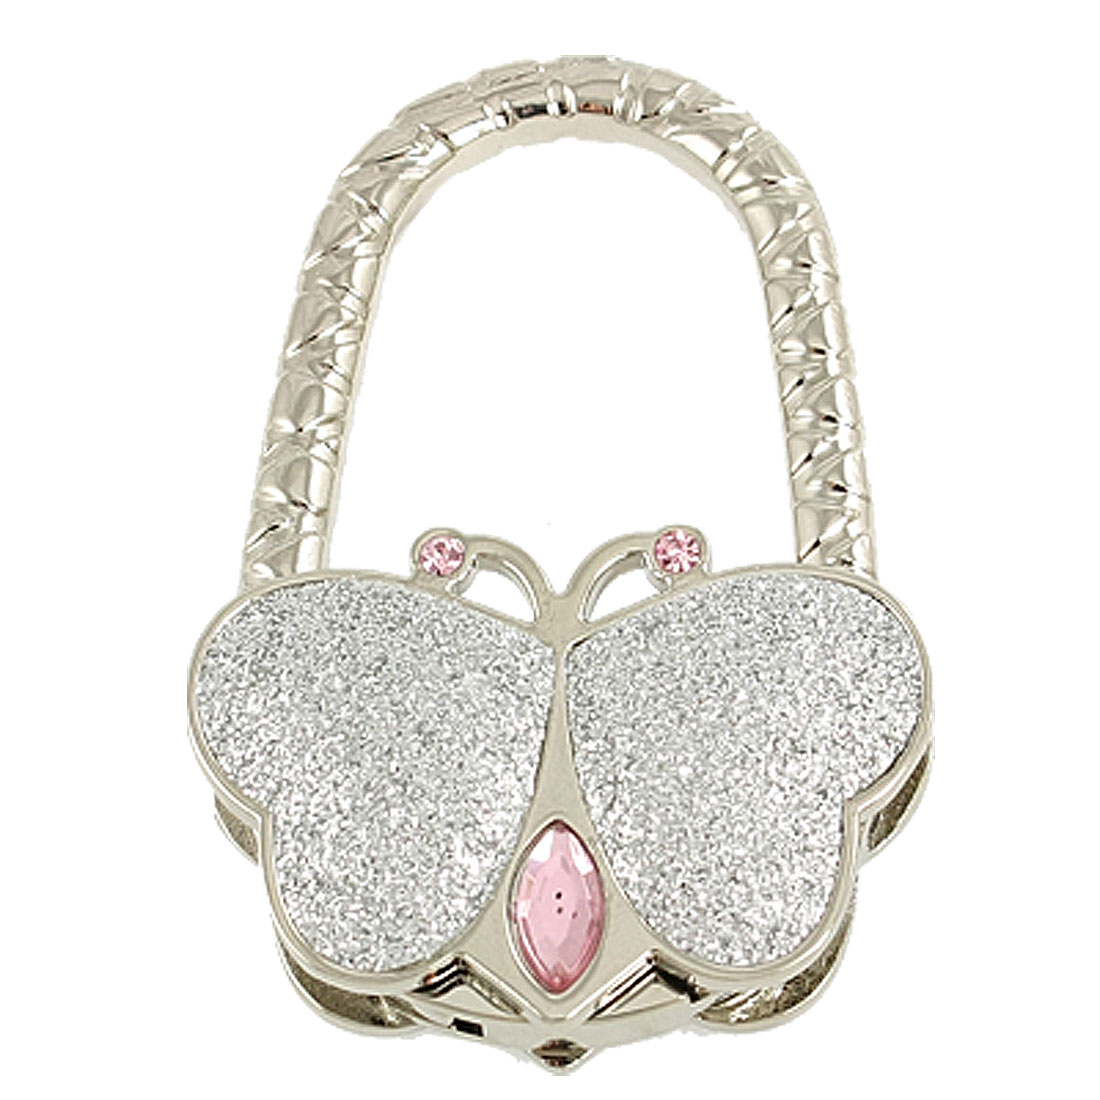 Silver Tone Glitter Powder Accent Butterfly Handbag Hook Purse Hanger